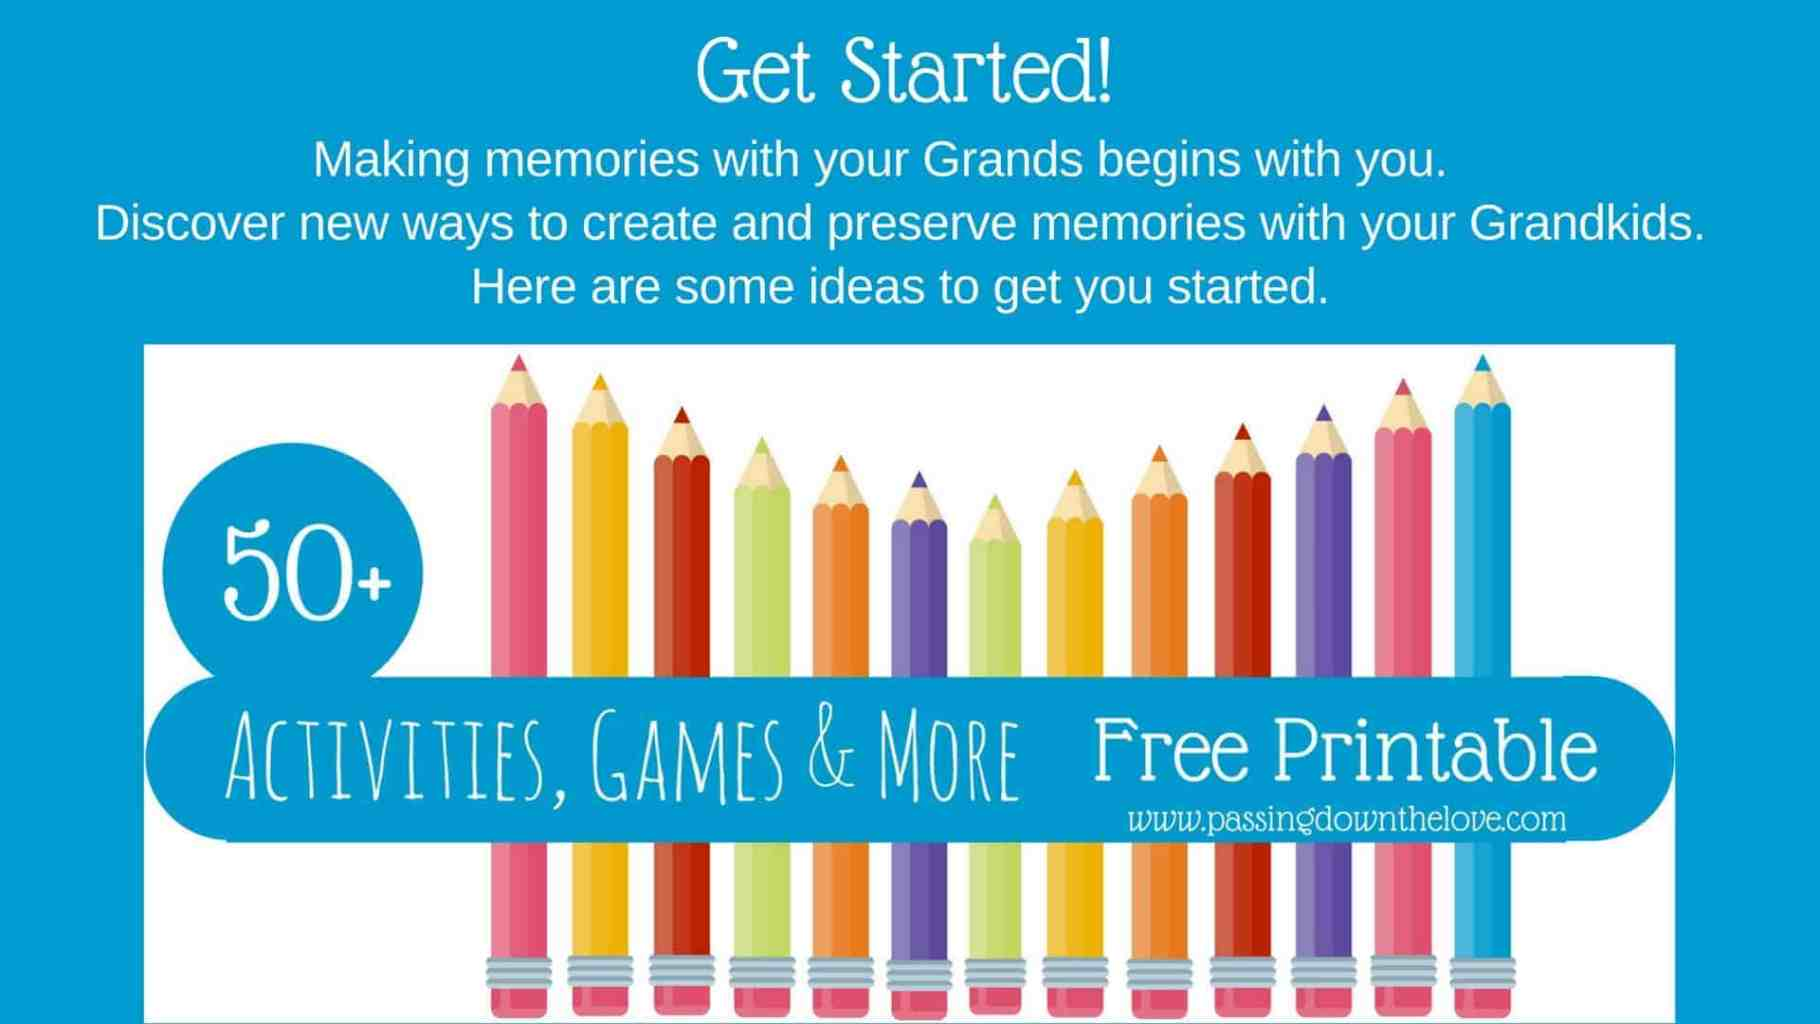 50+ Activities for Grandparents to do with Grandkids